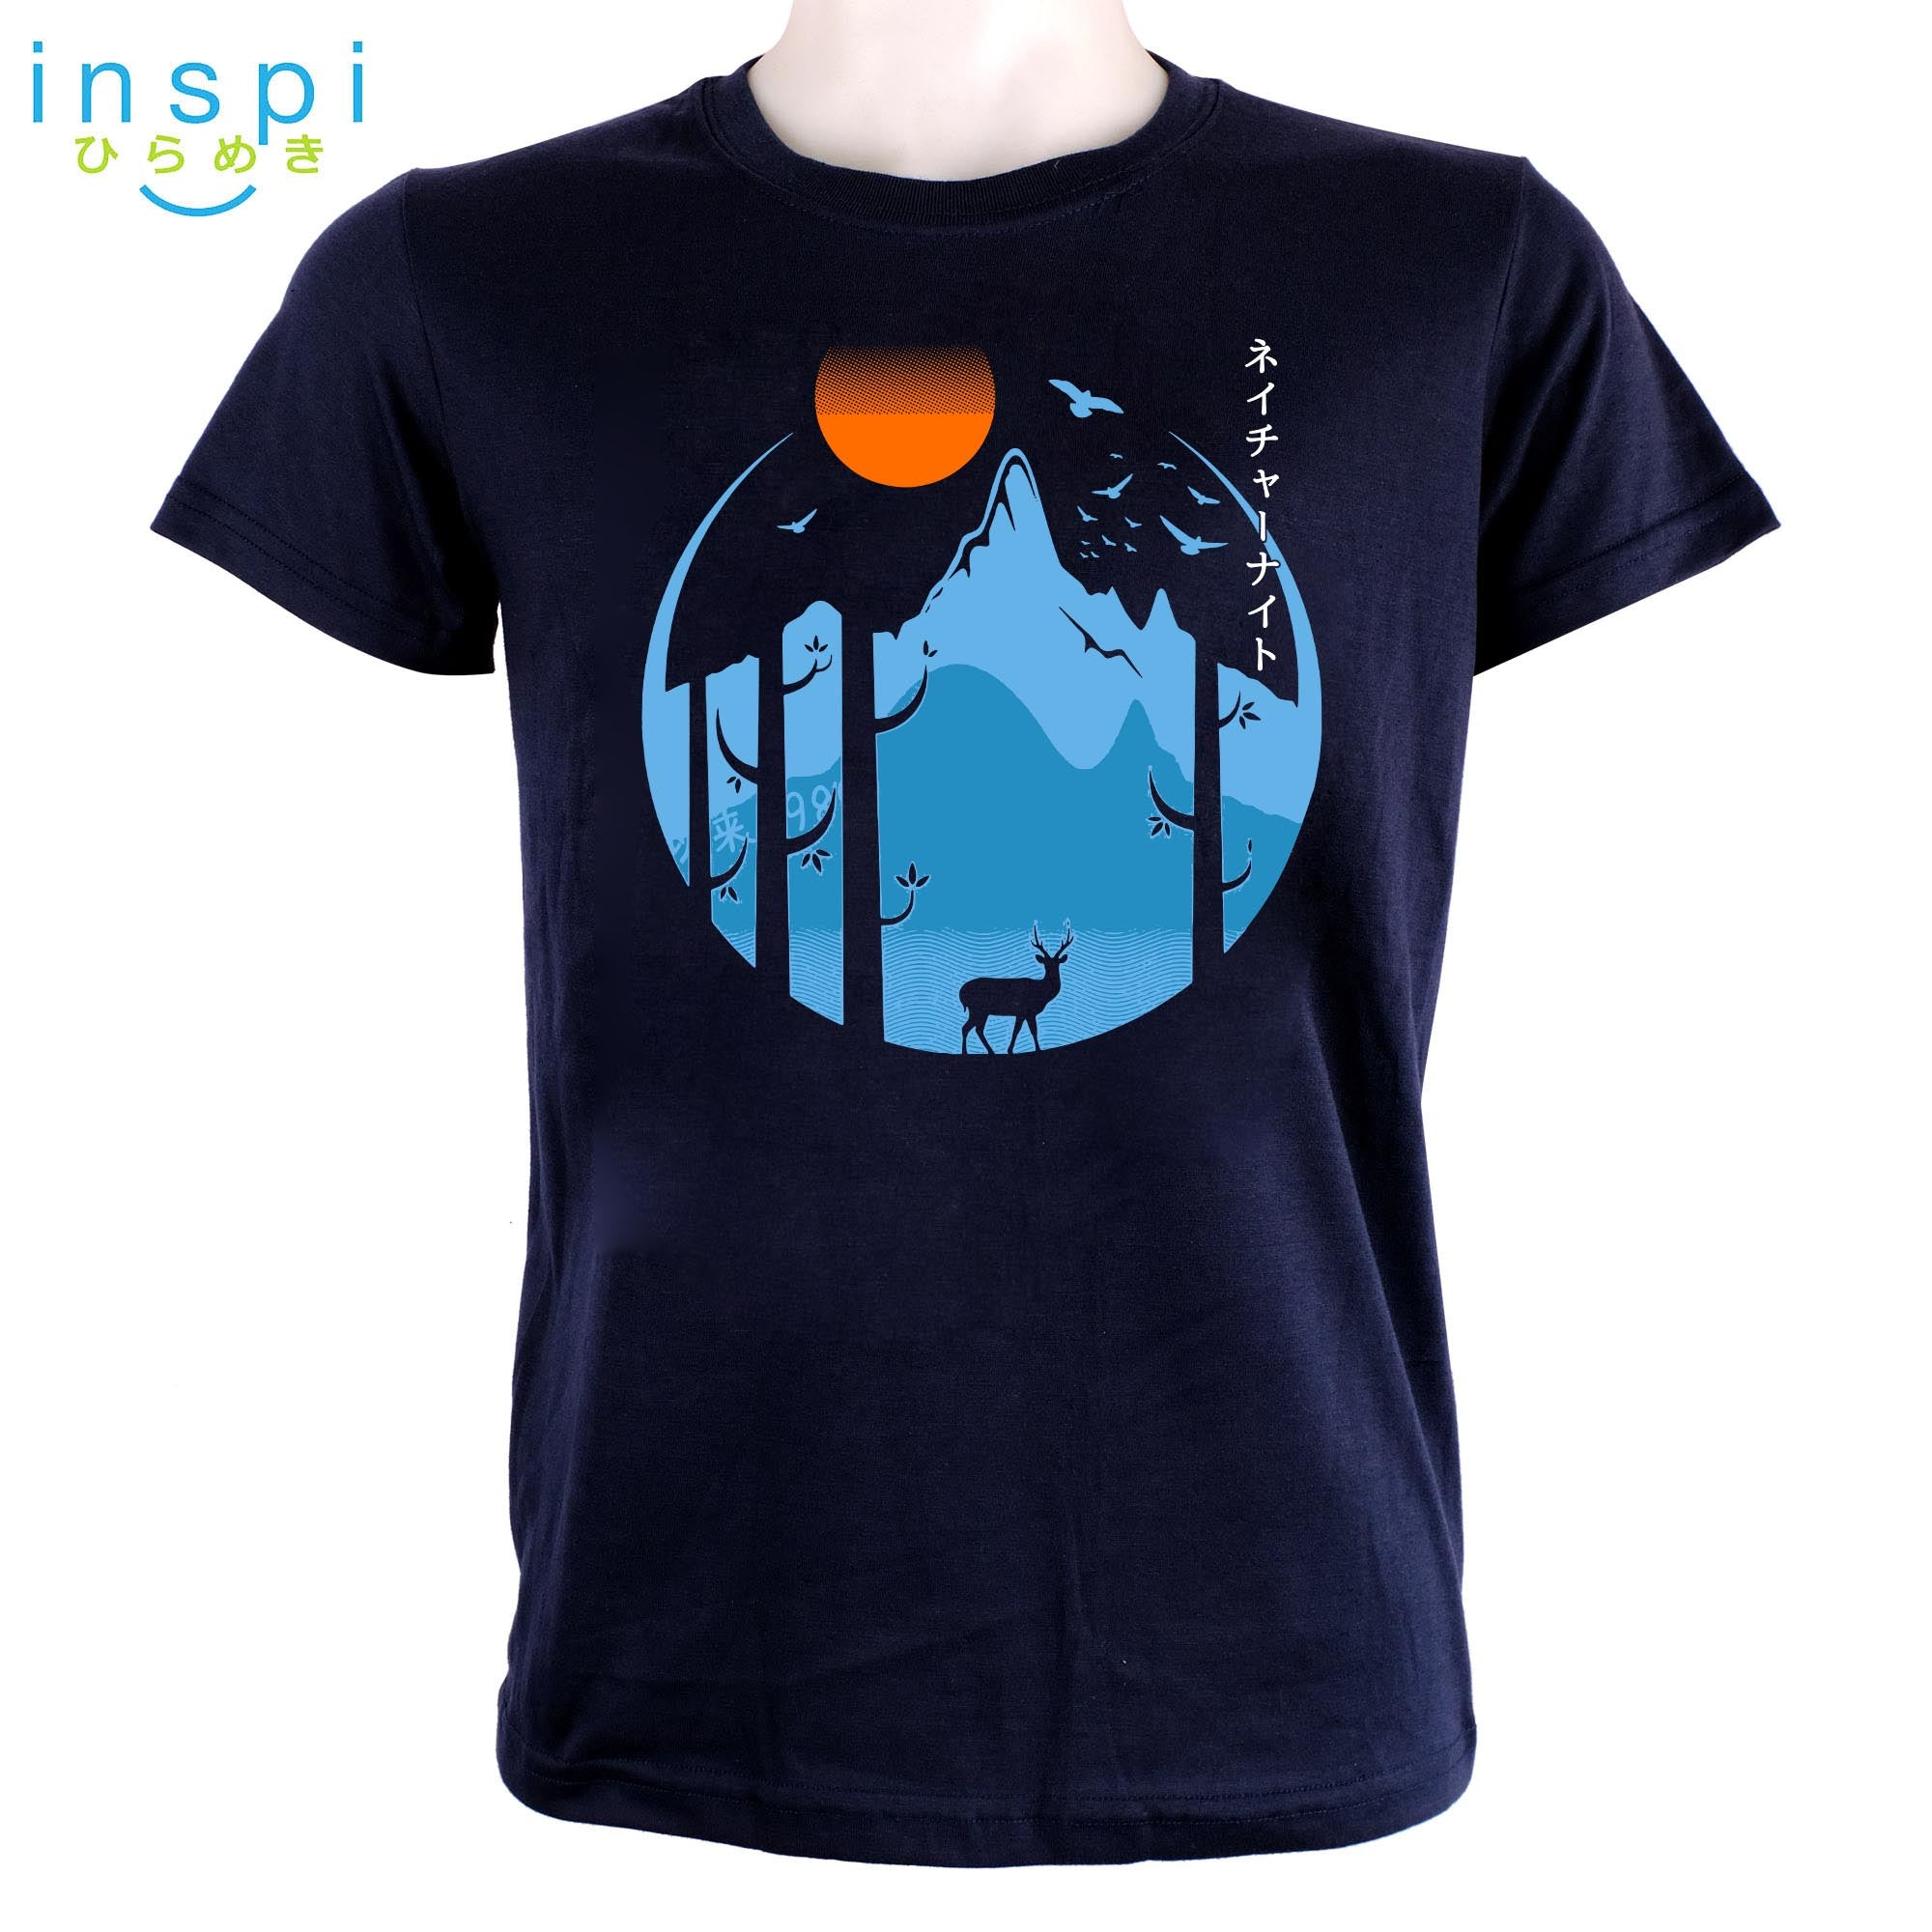 INSPI Tees Nature Evening Graphic Tshirt in Navy Blue